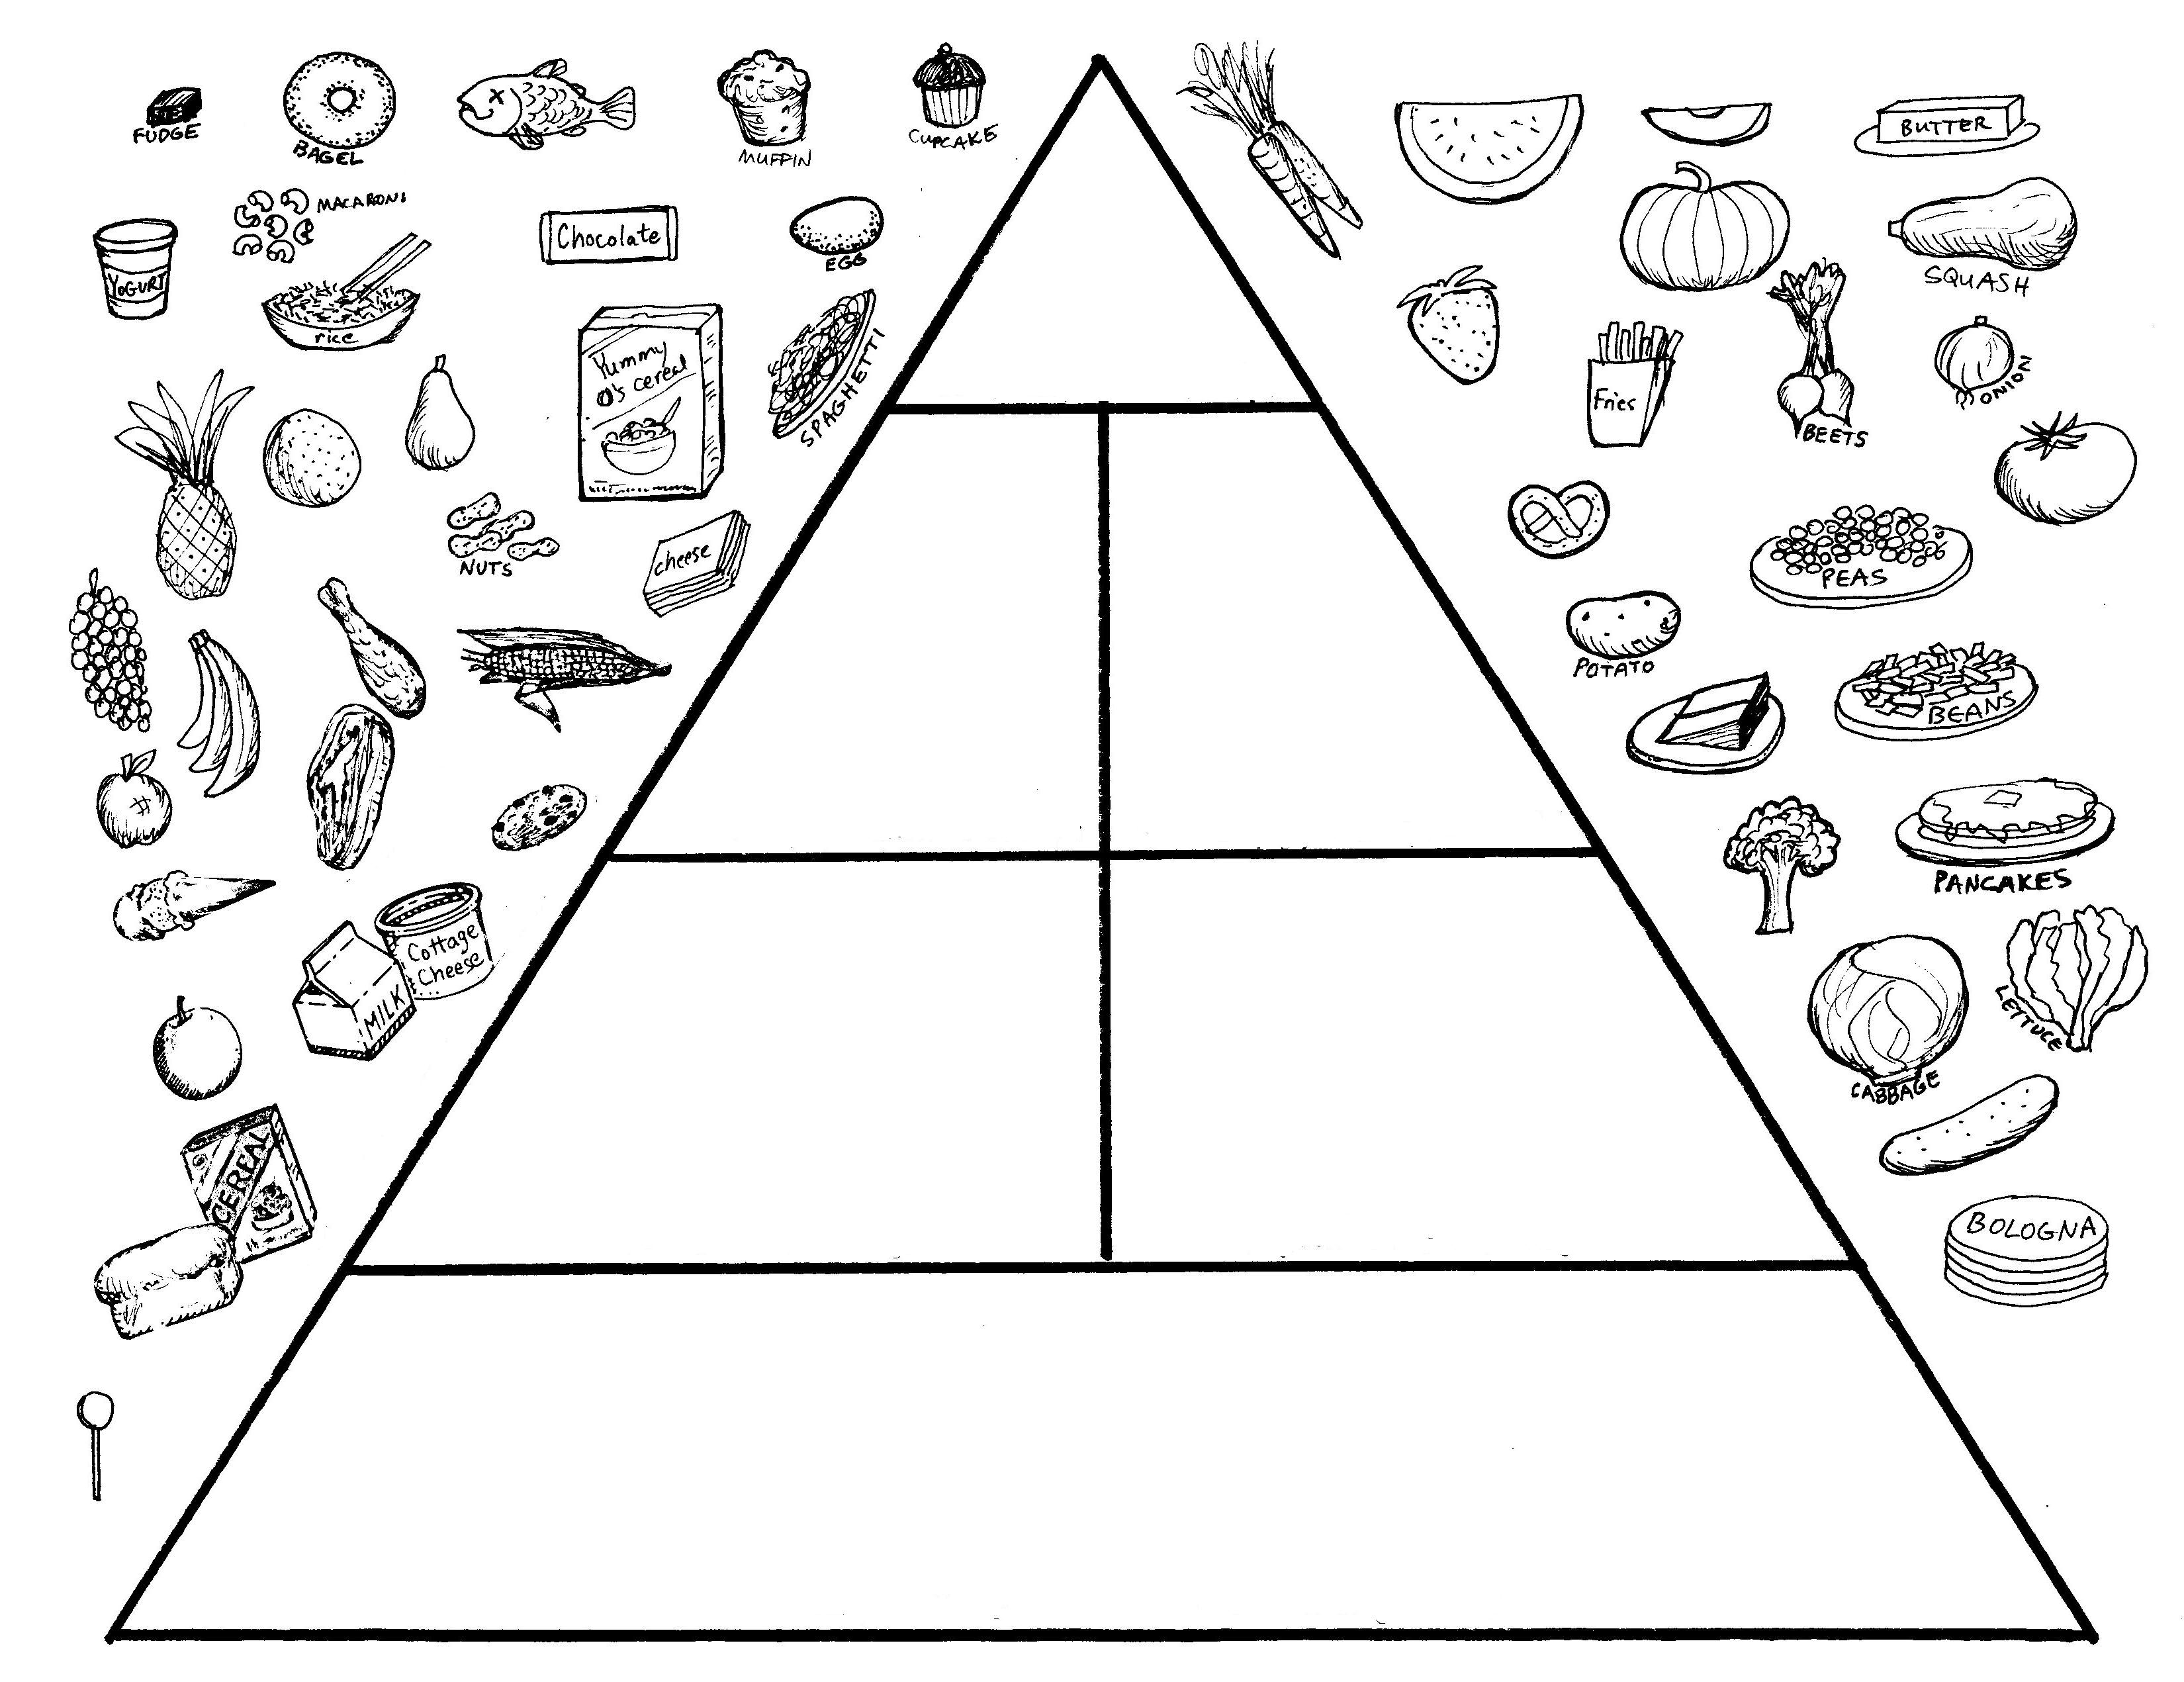 4 Images of Large Printable Food Pyramid